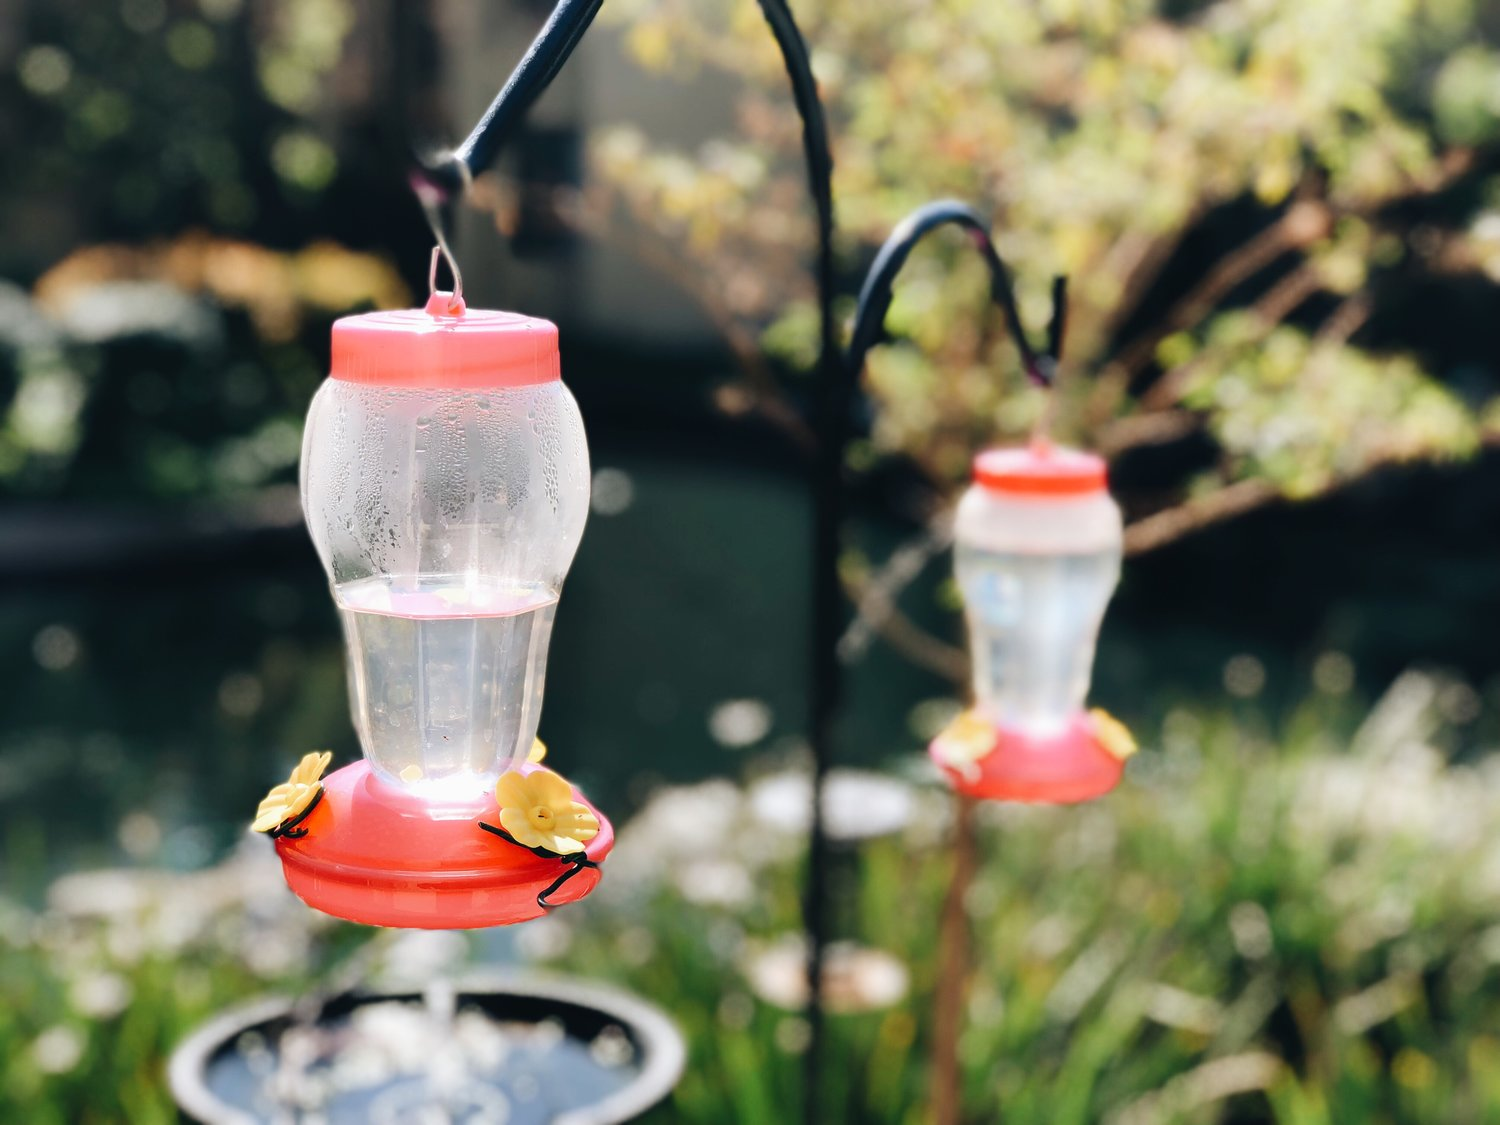 4. Feeders - I bought ours for $1 each at the dollar tree and added some perches with garden wire. To see how I did it, check out this post.